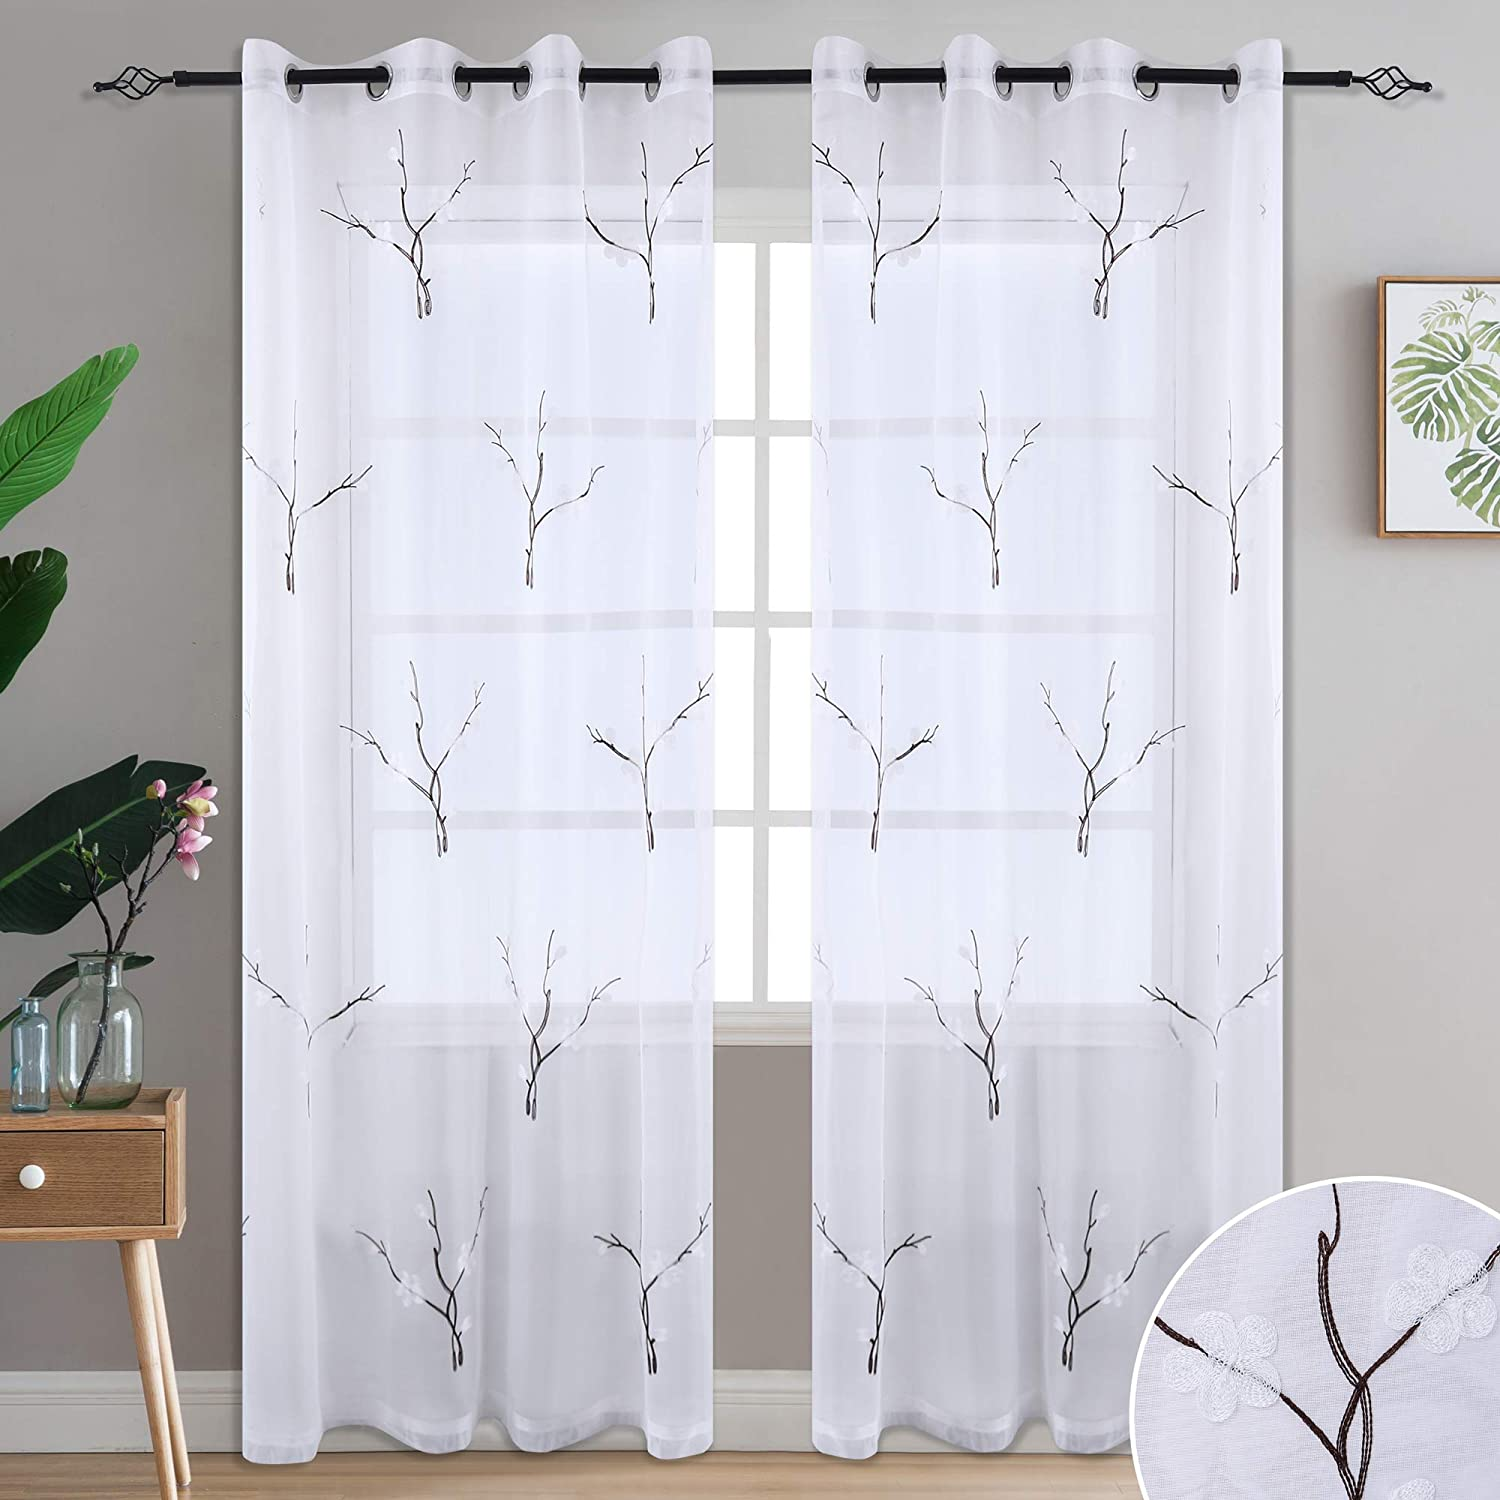 one Pair, 52 Width x 84 Length, Brown DONREN Foliage Embroidery Sheer Window Curtains for Living Room Grommet Voile Window Panels